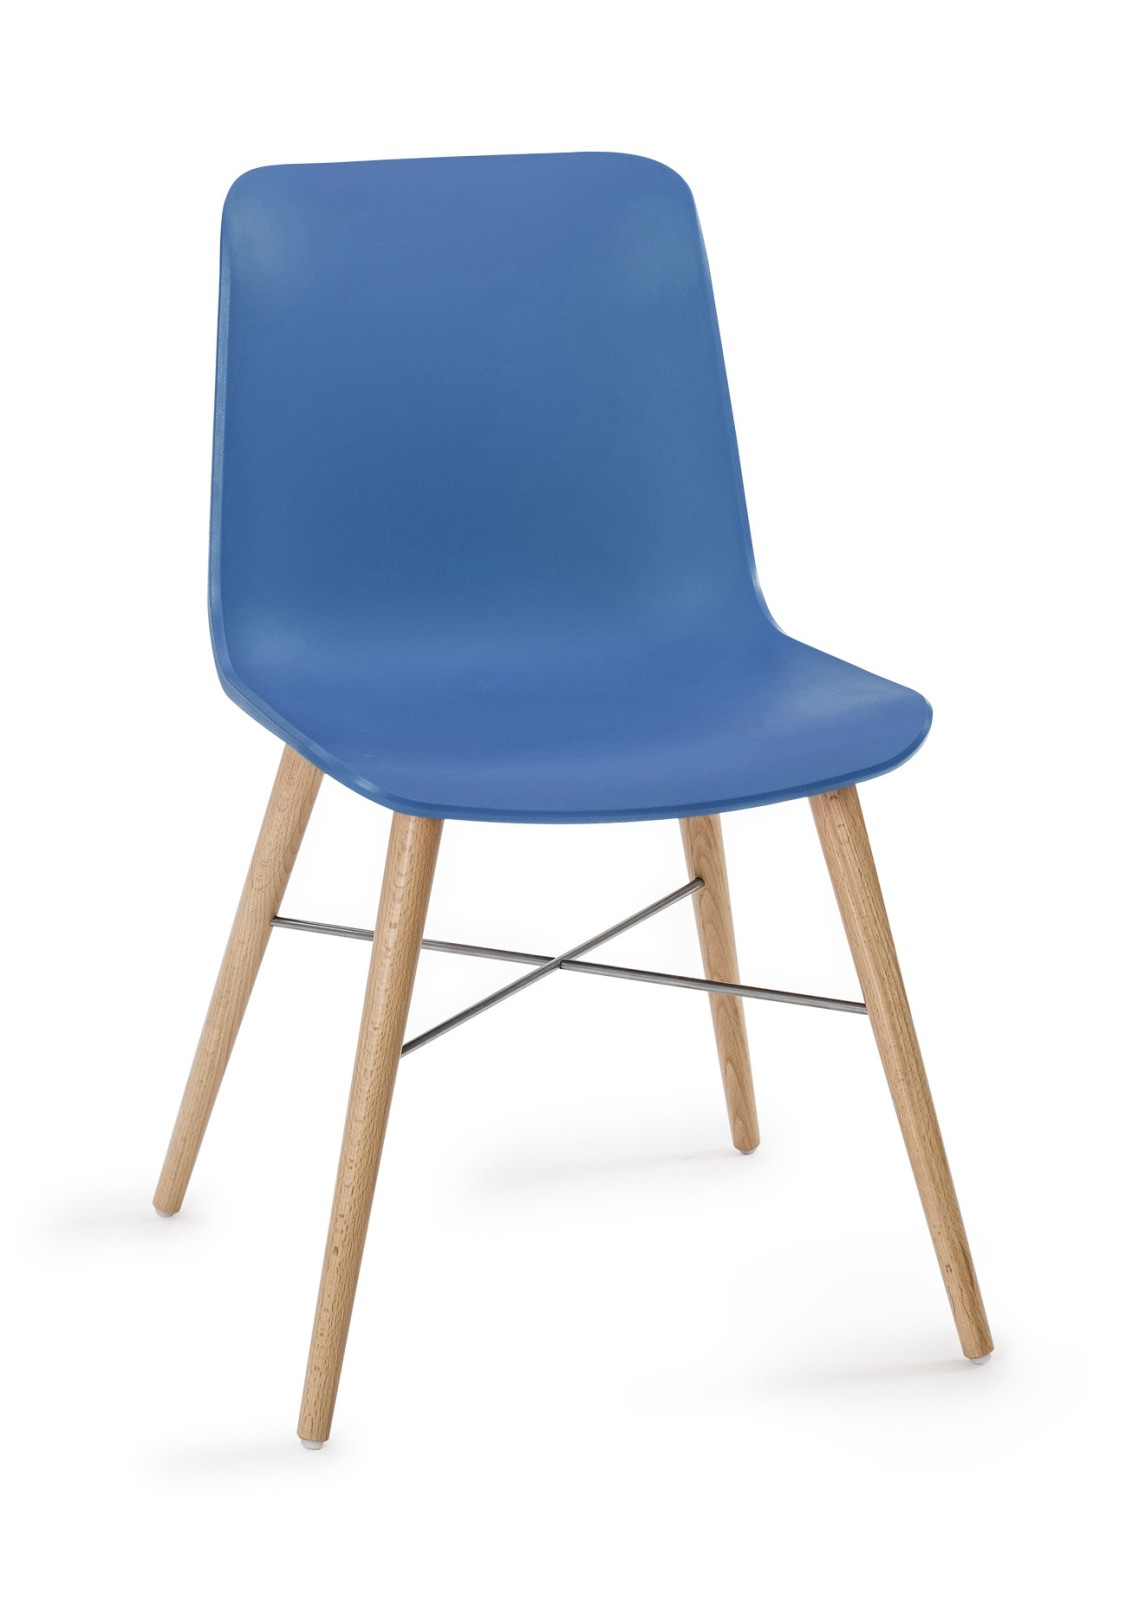 Laurel Work Café Chair Blue